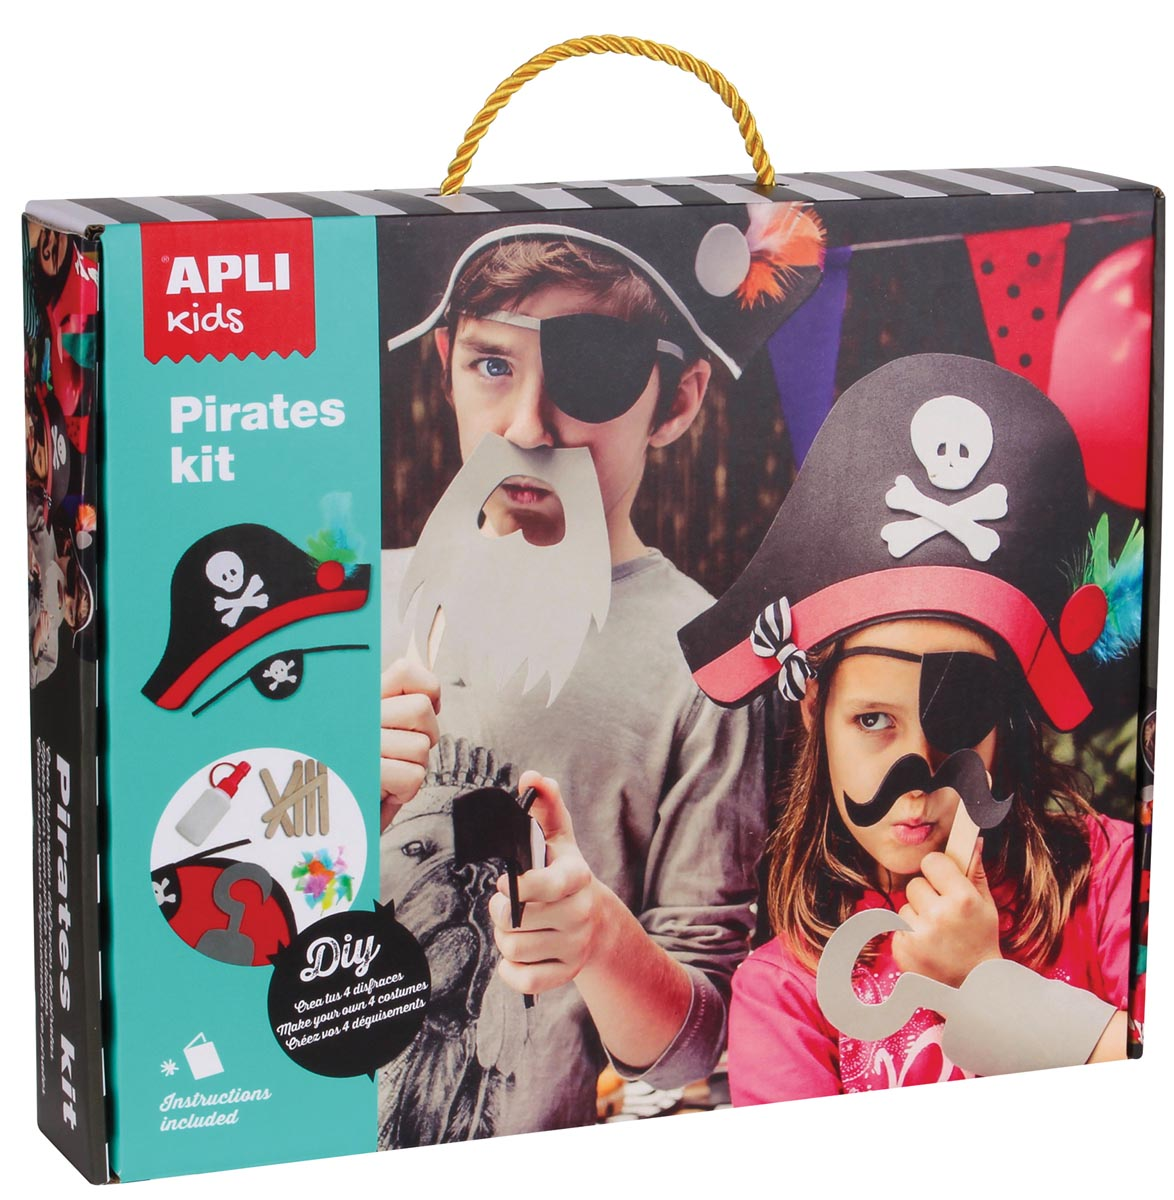 Apli Kids DIY verkleedkit Piraten